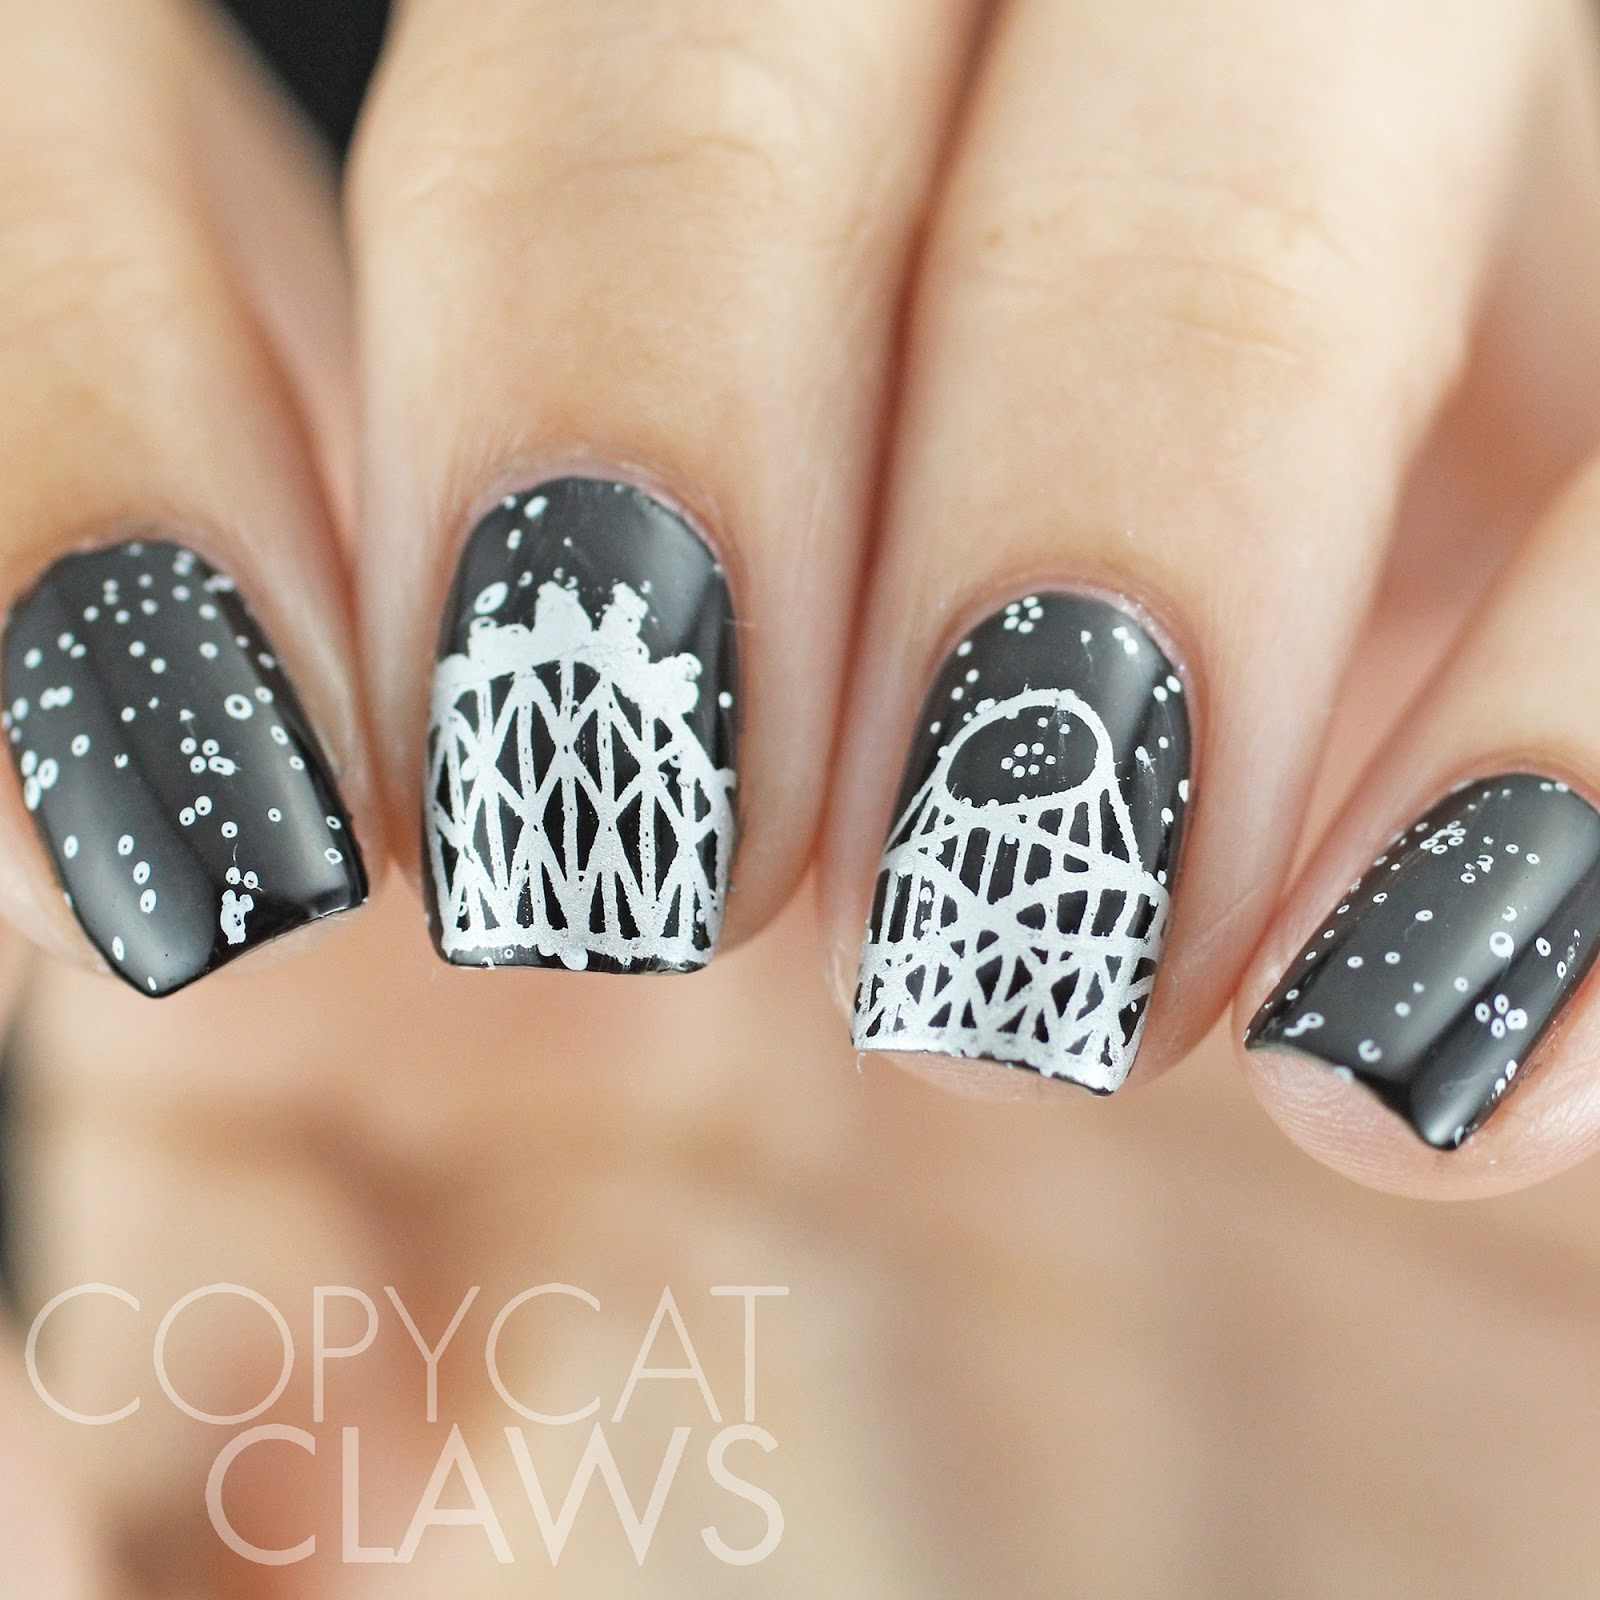 Copycat Claws The Night Circus Nail Art